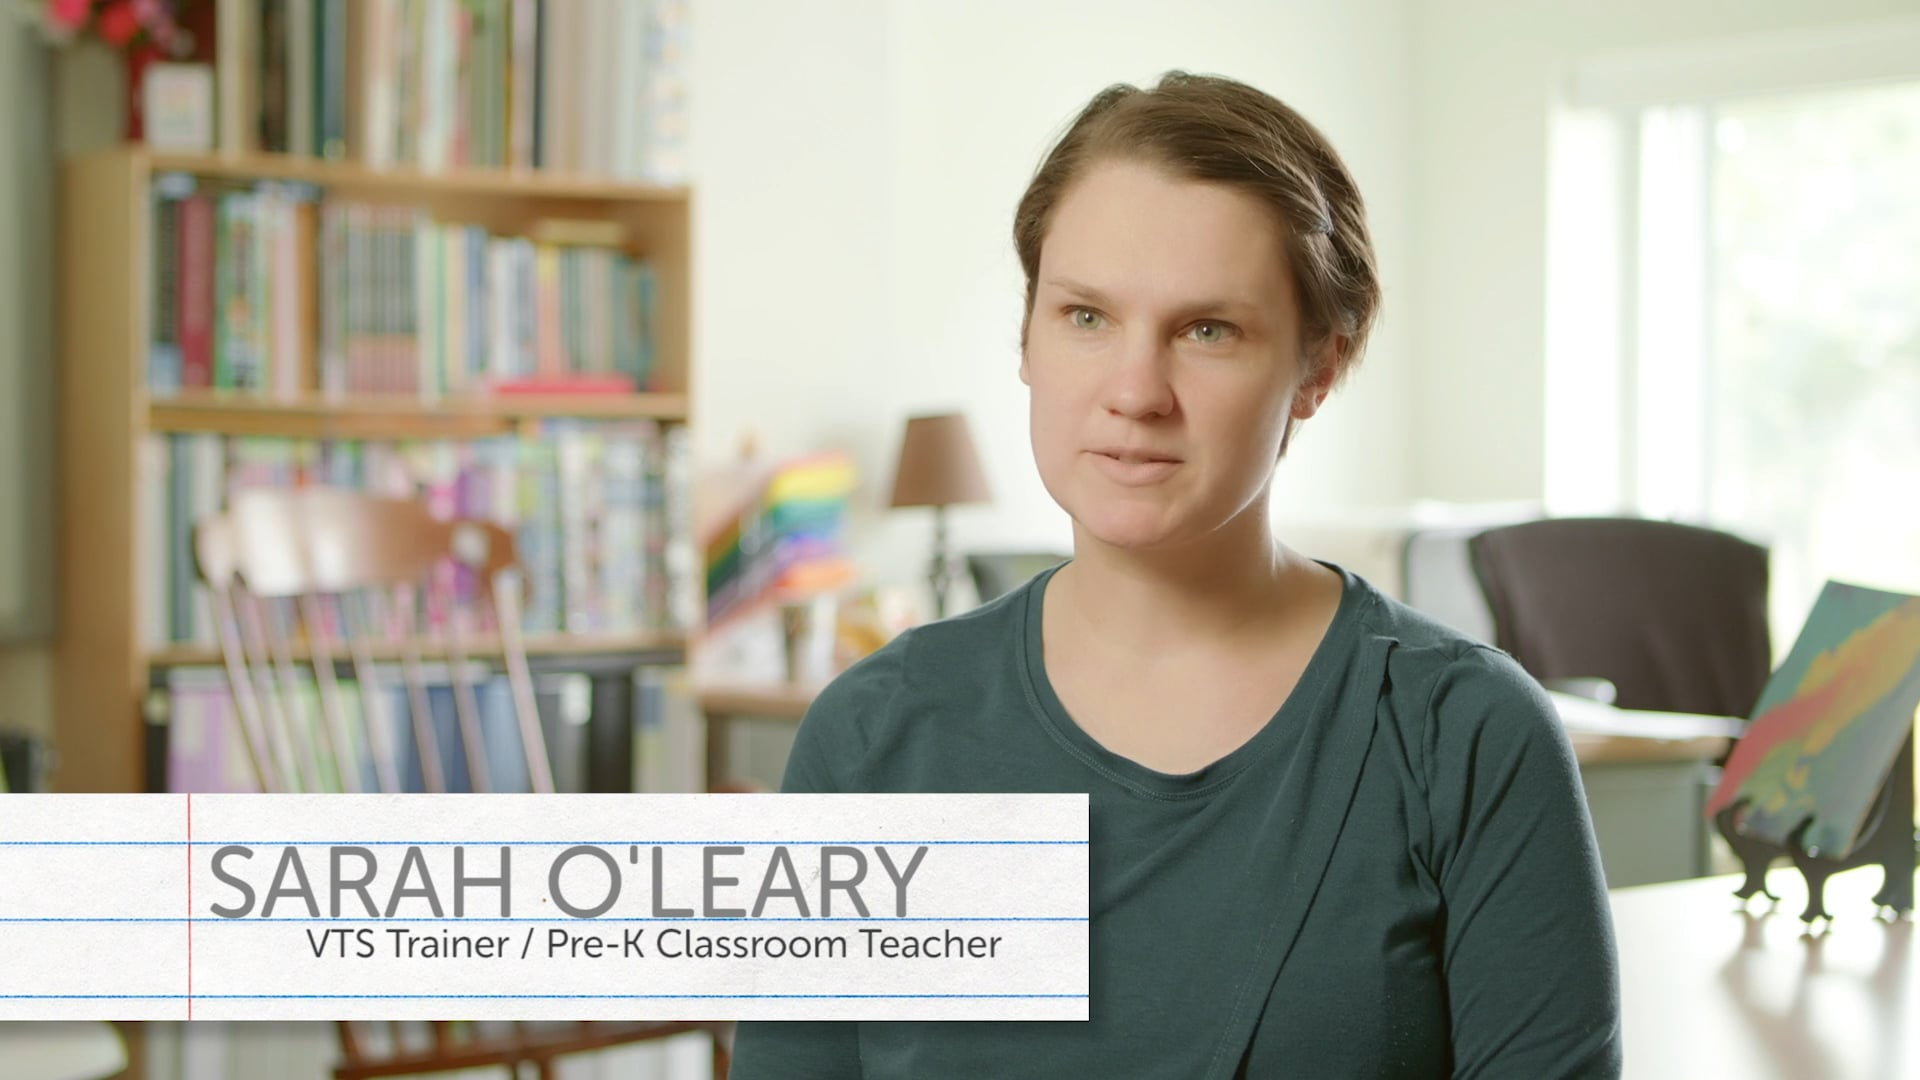 Sarah O'Leary on VTS in Early Childhood education